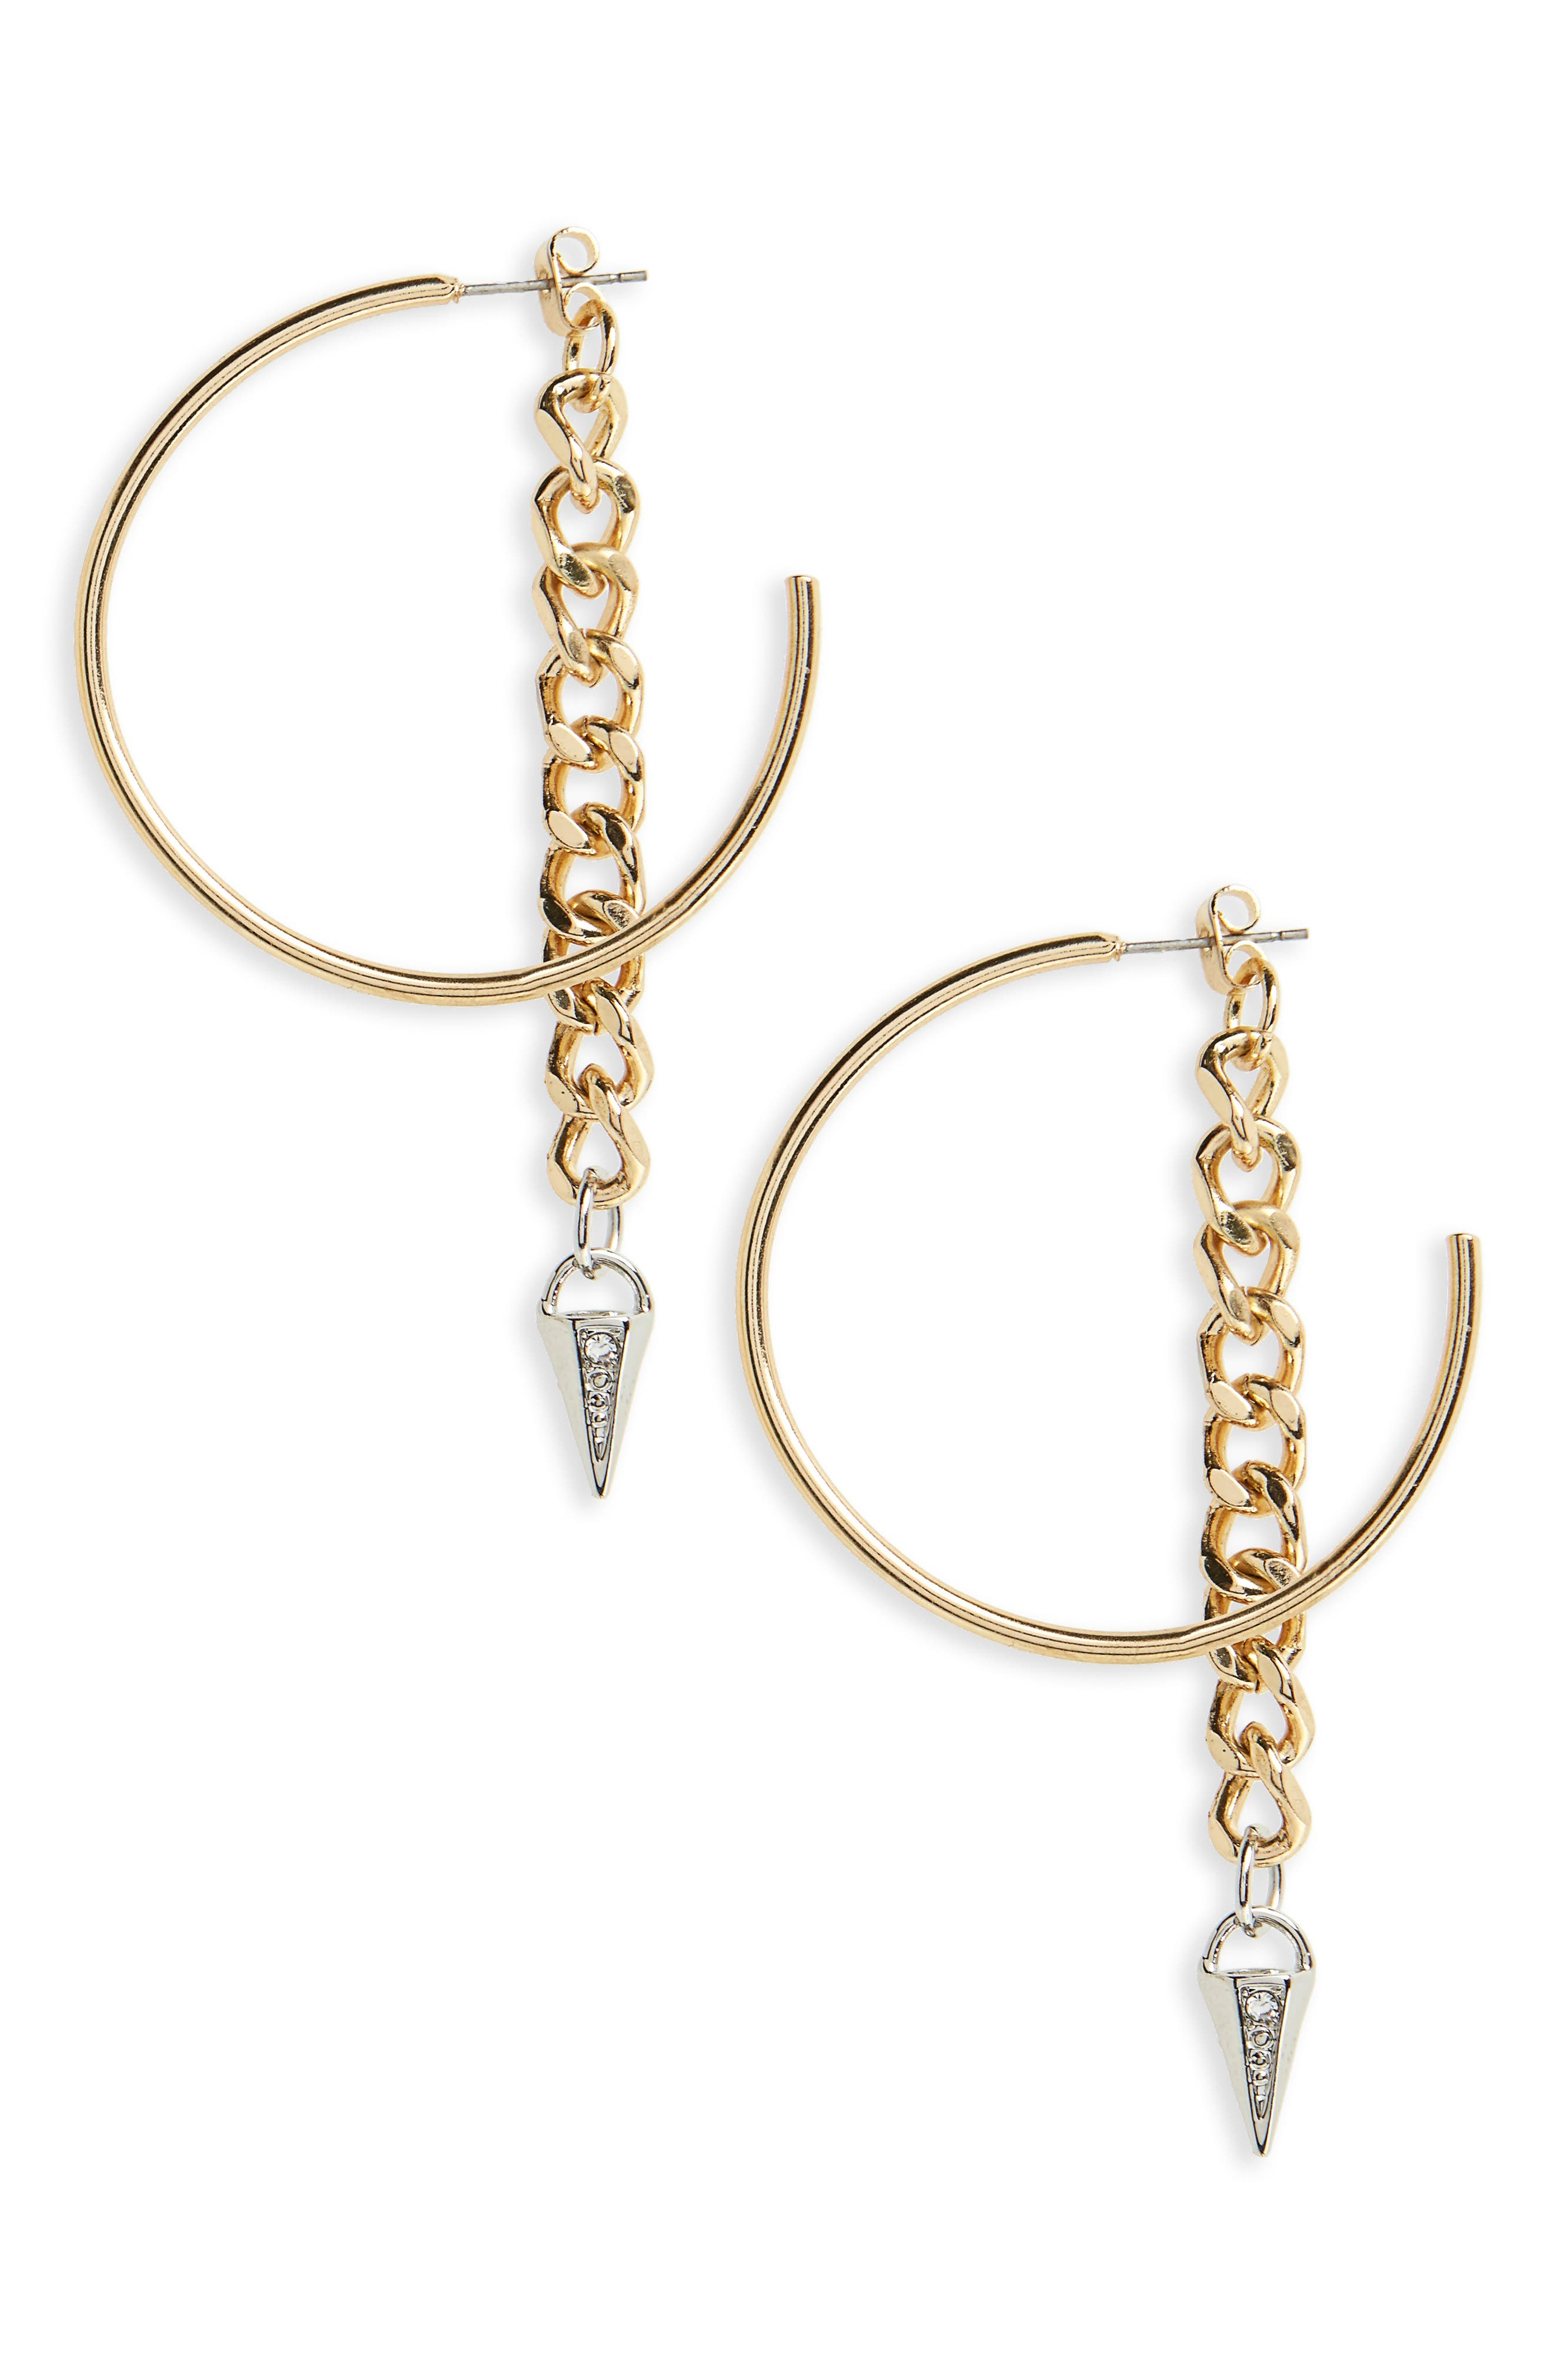 Hoop with Chain & Spear Drop Earrings,                             Main thumbnail 1, color,                             040